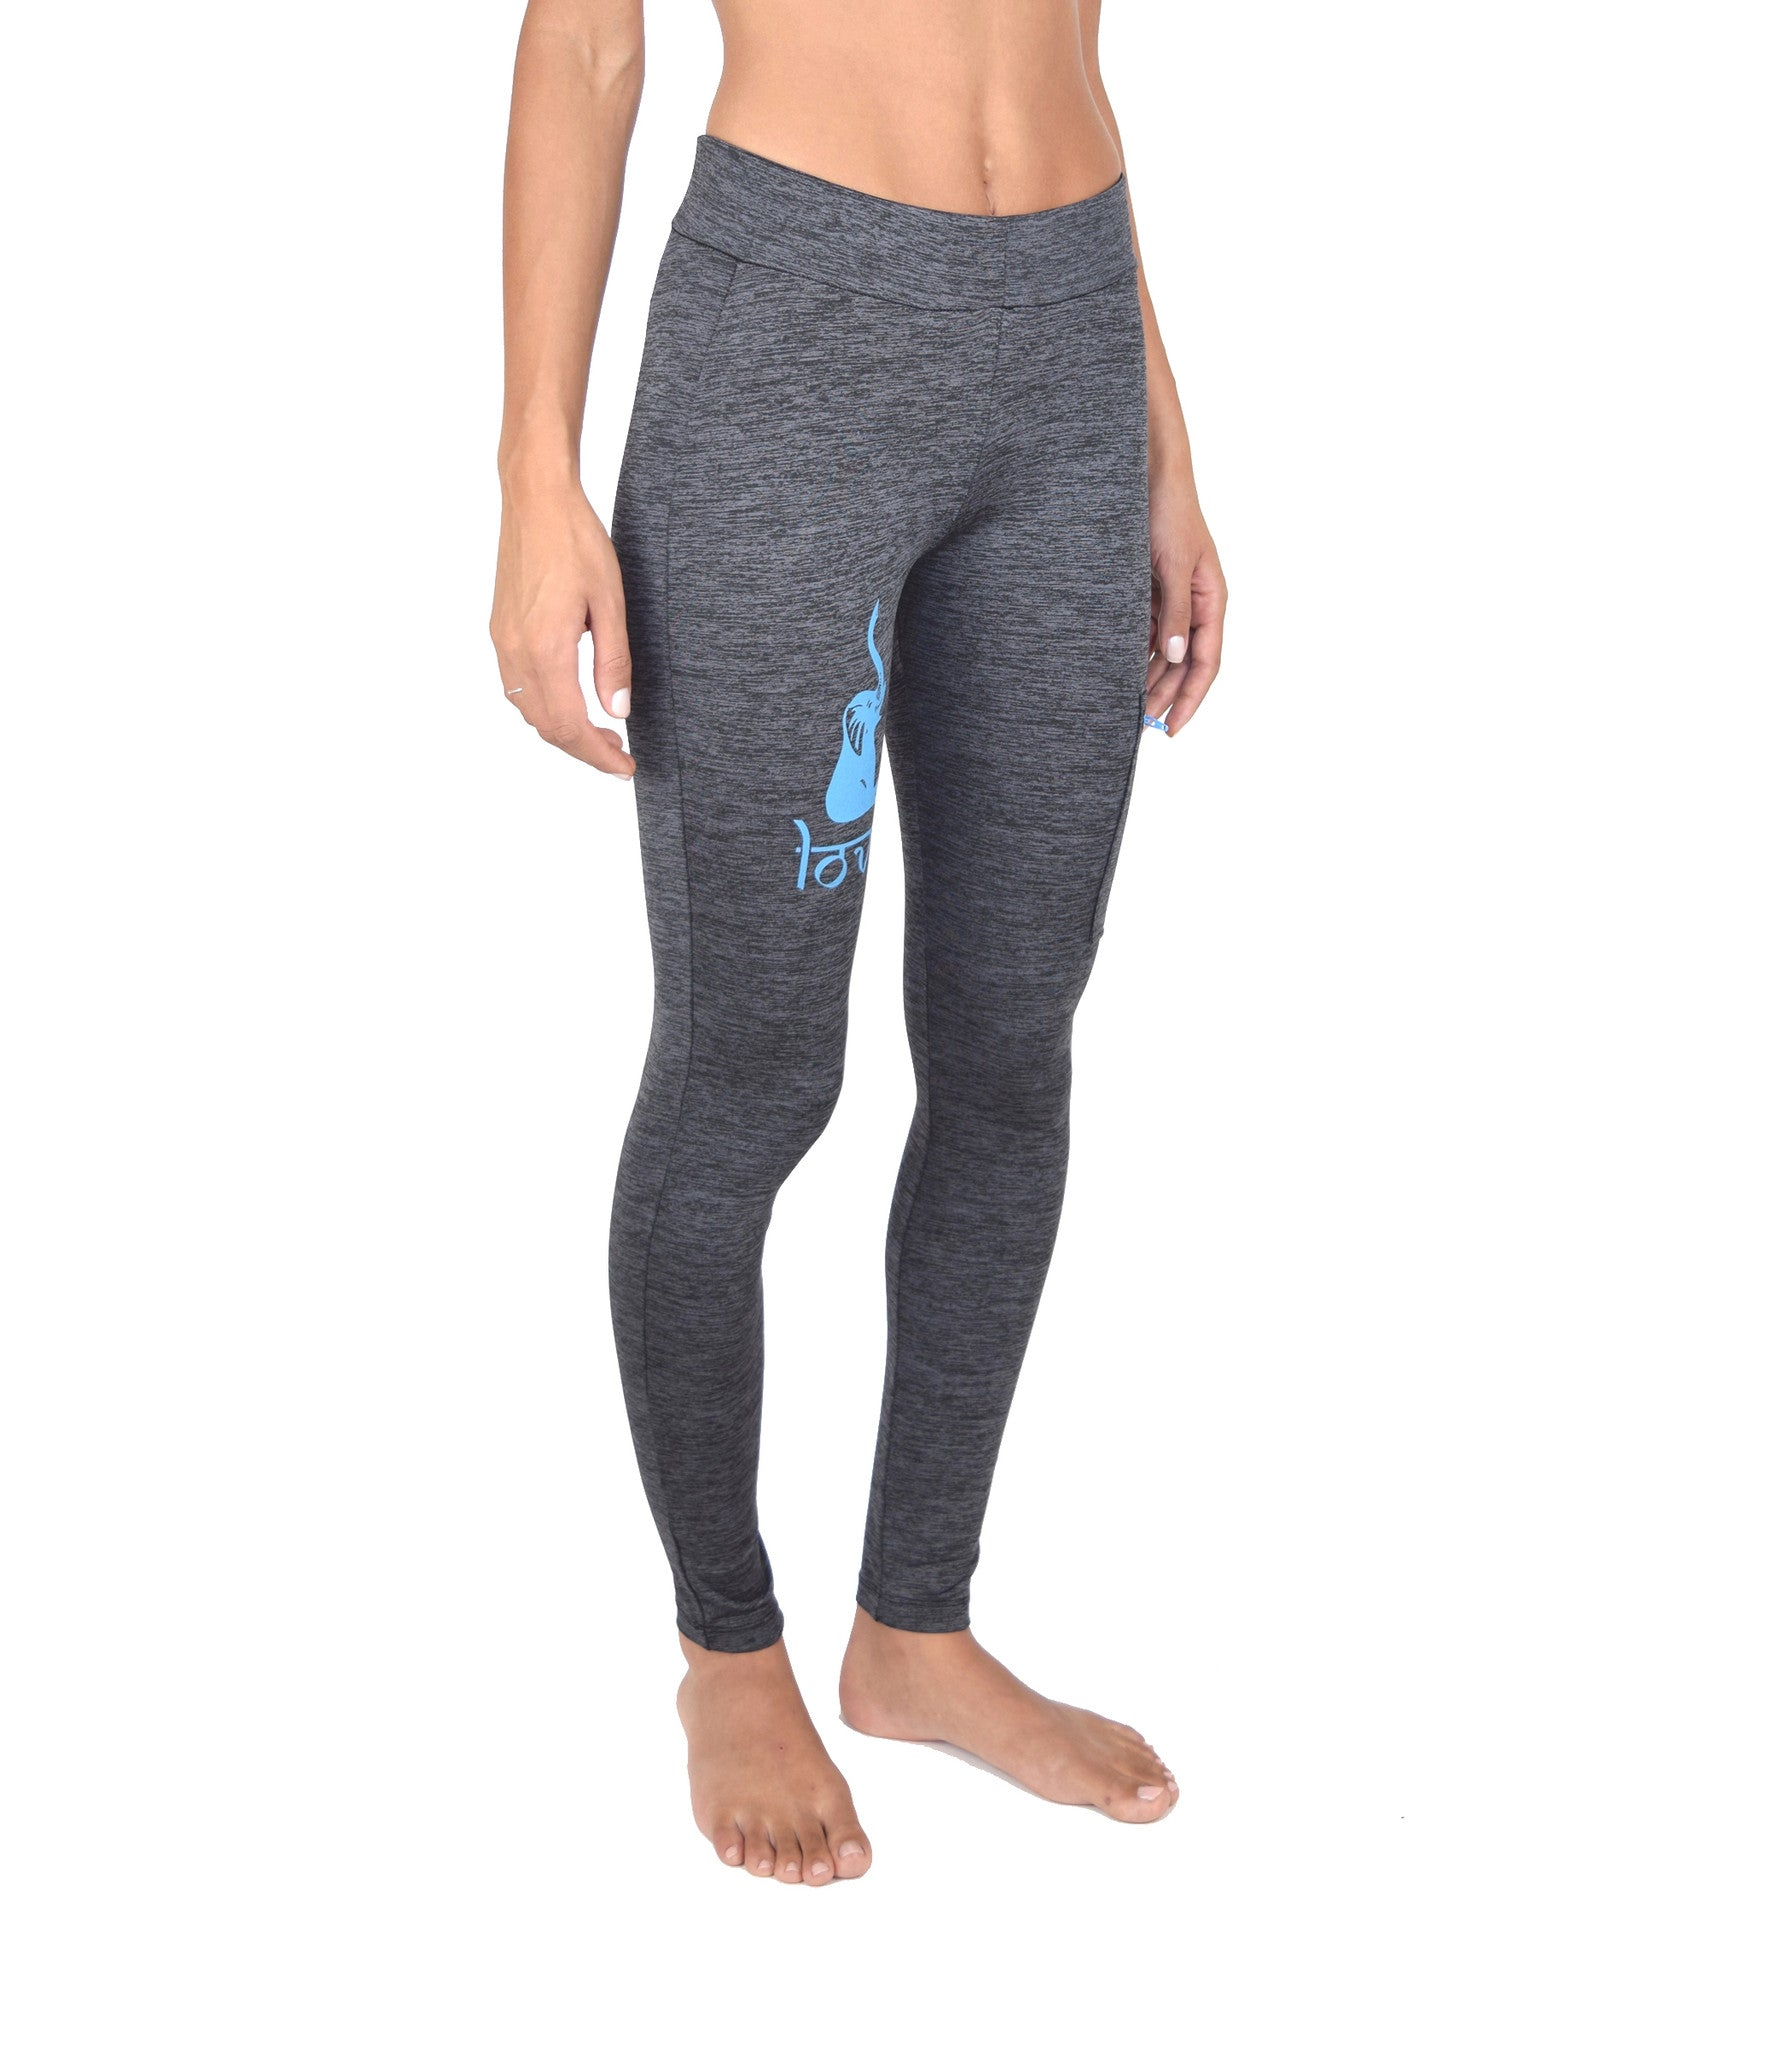 Rock Climbing Apparel Climbing Tights with Pocket